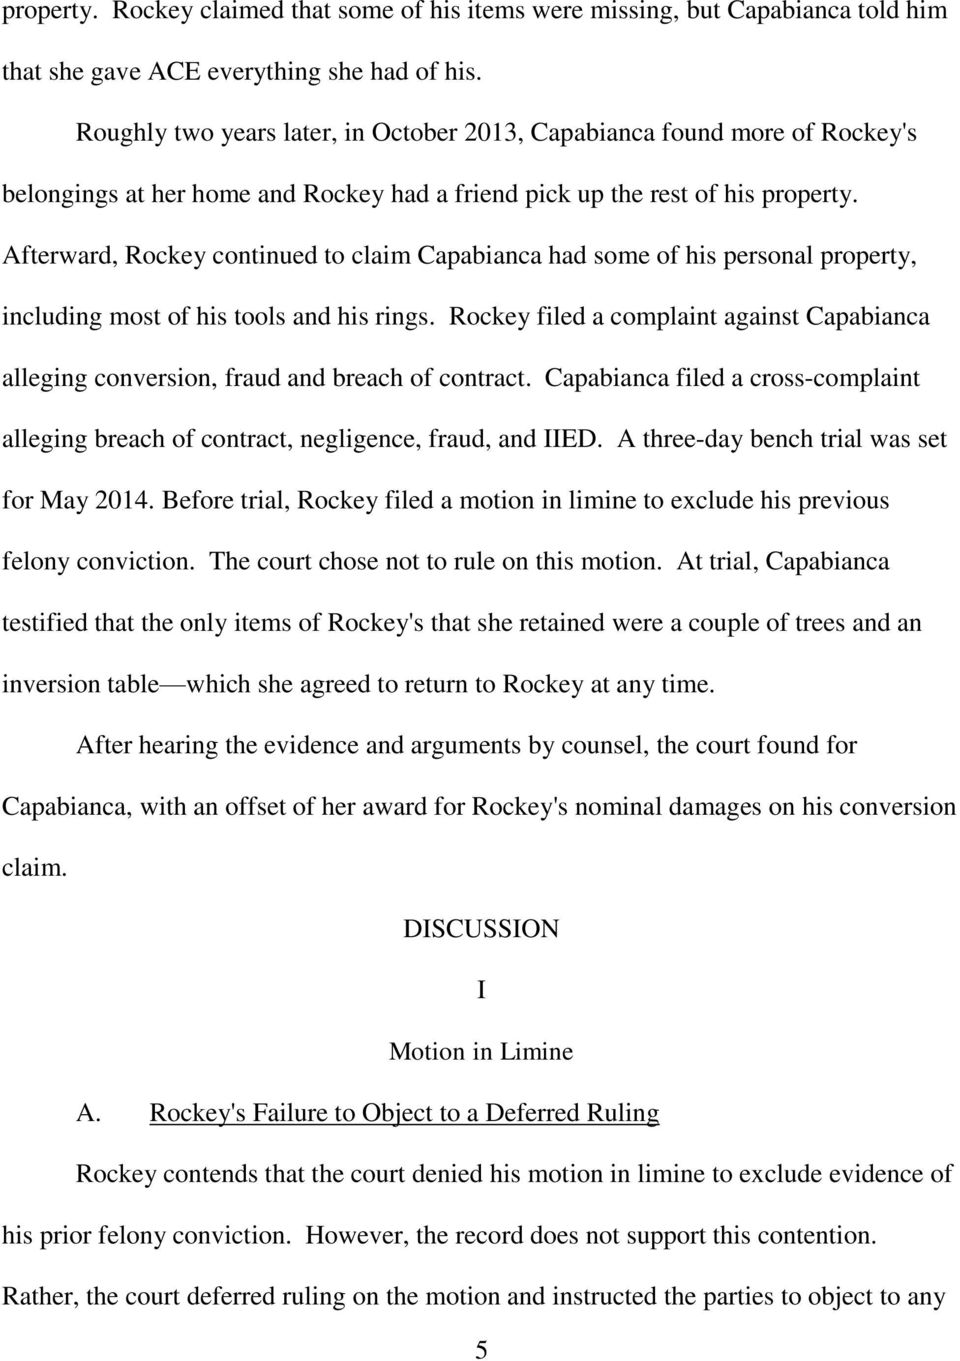 Afterward, Rockey continued to claim Capabianca had some of his personal property, including most of his tools and his rings.